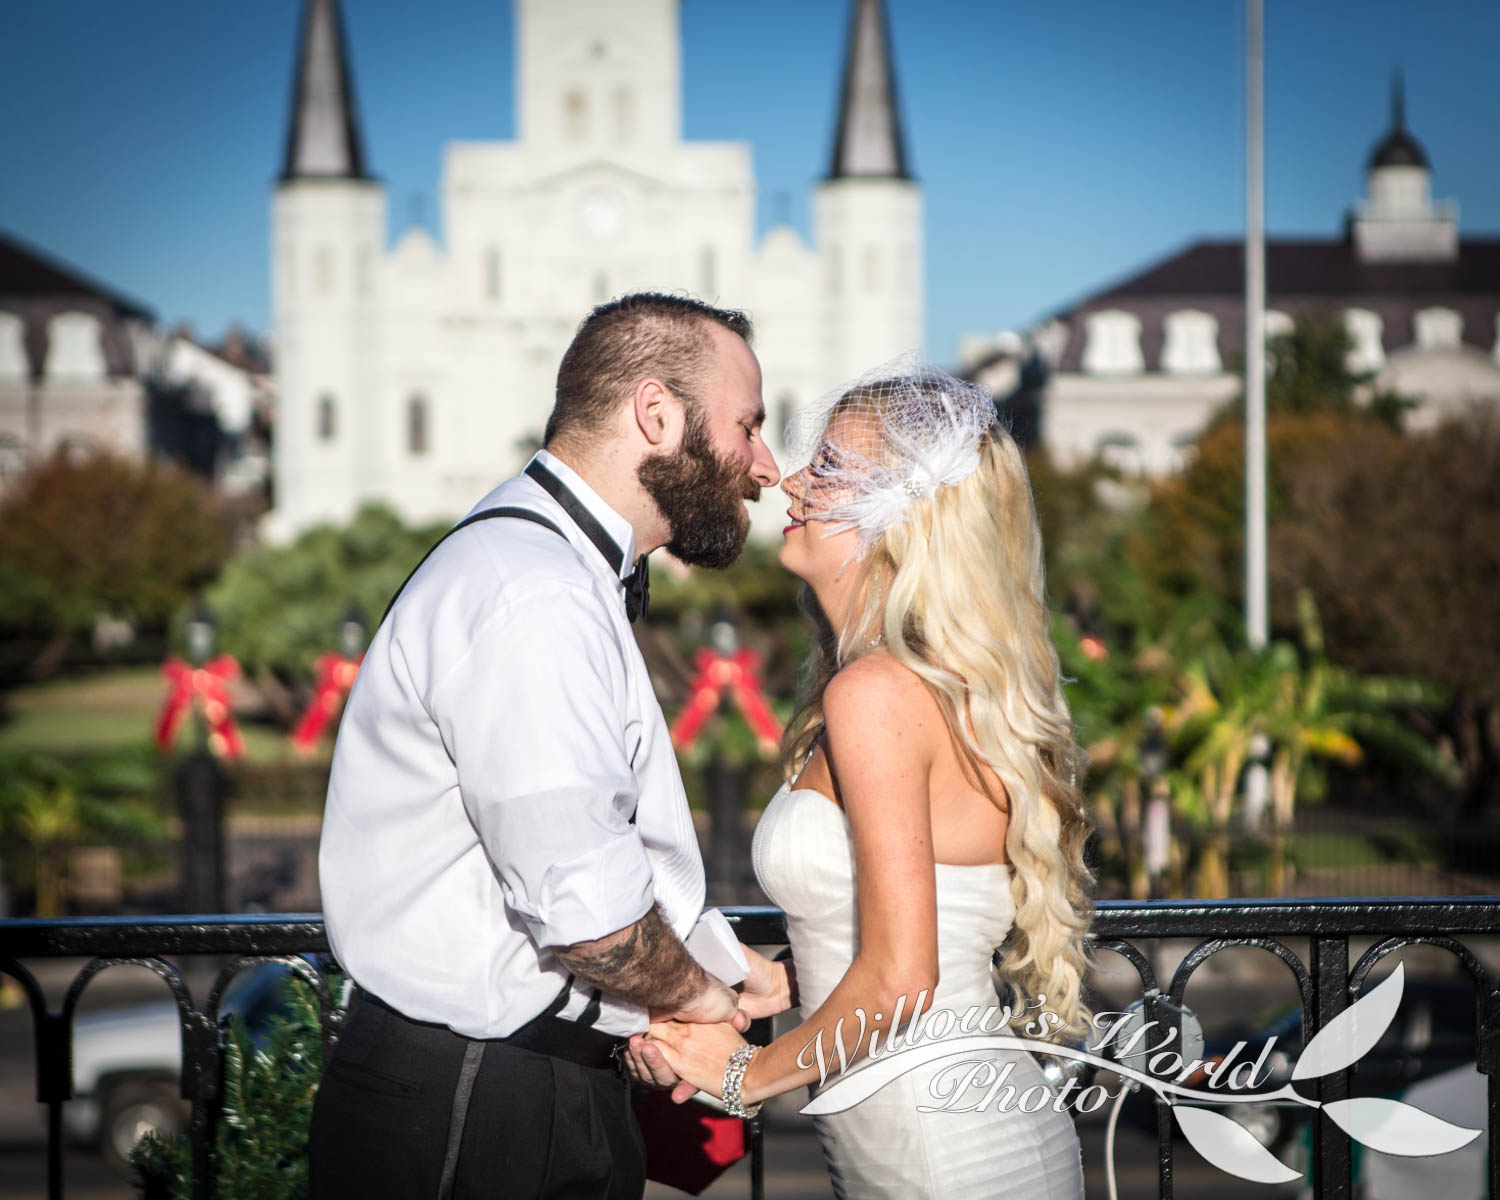 One of the best parts of organizing your own intimate ceremony is that you can kiss as often as you'd like...